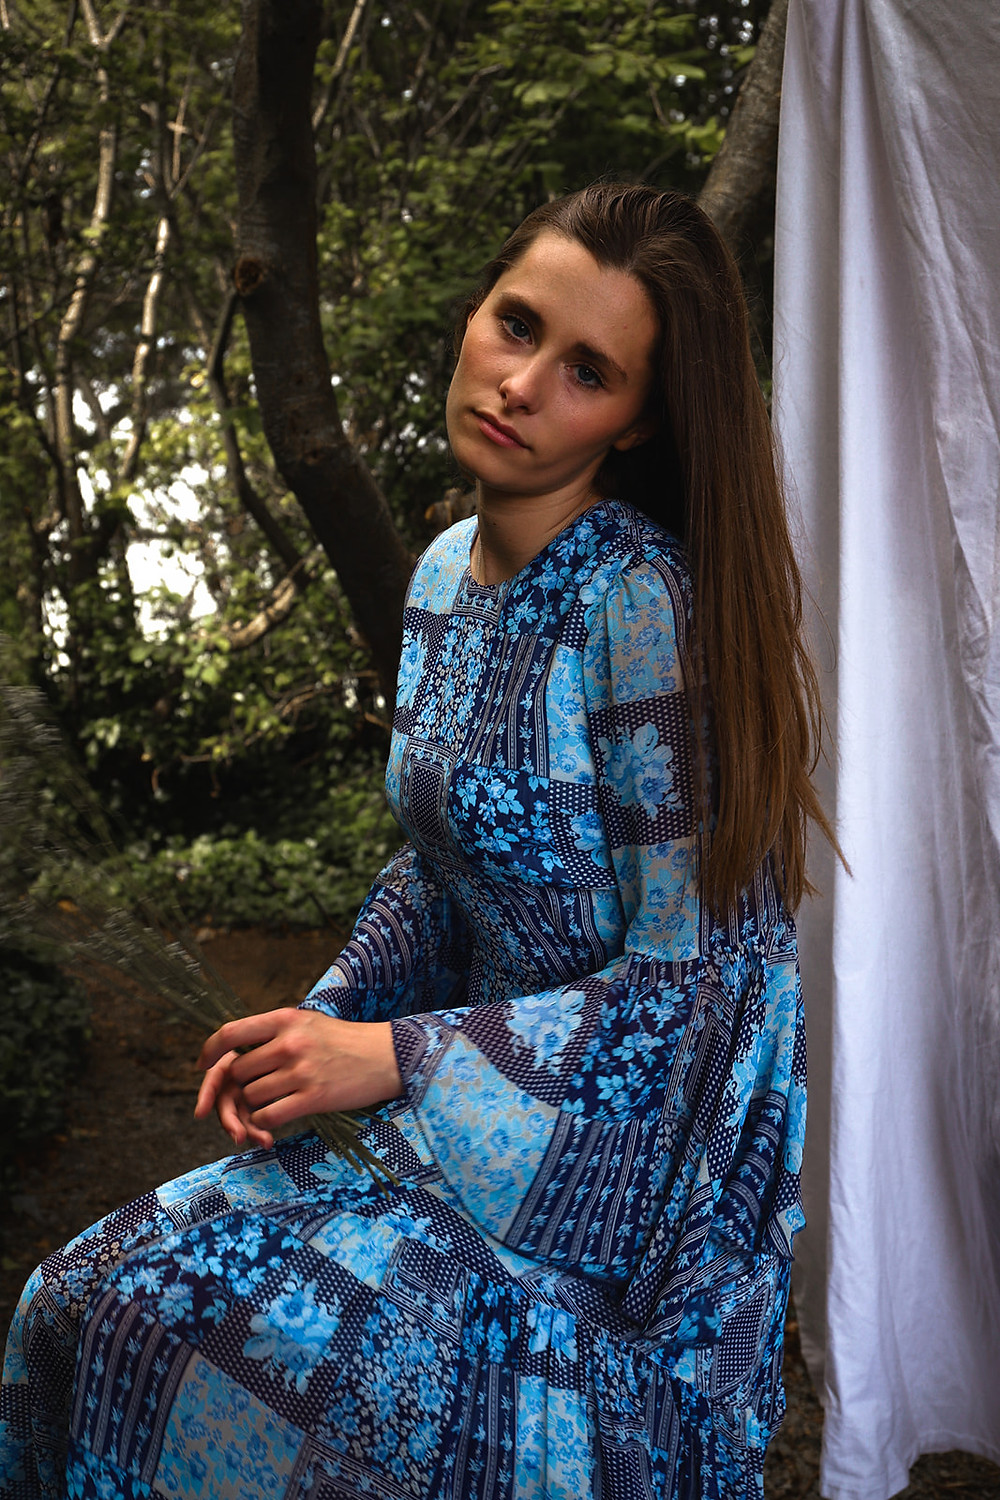 Model wears a blue floral print dress with a long bell sleeve and an A-line miid length skirt.